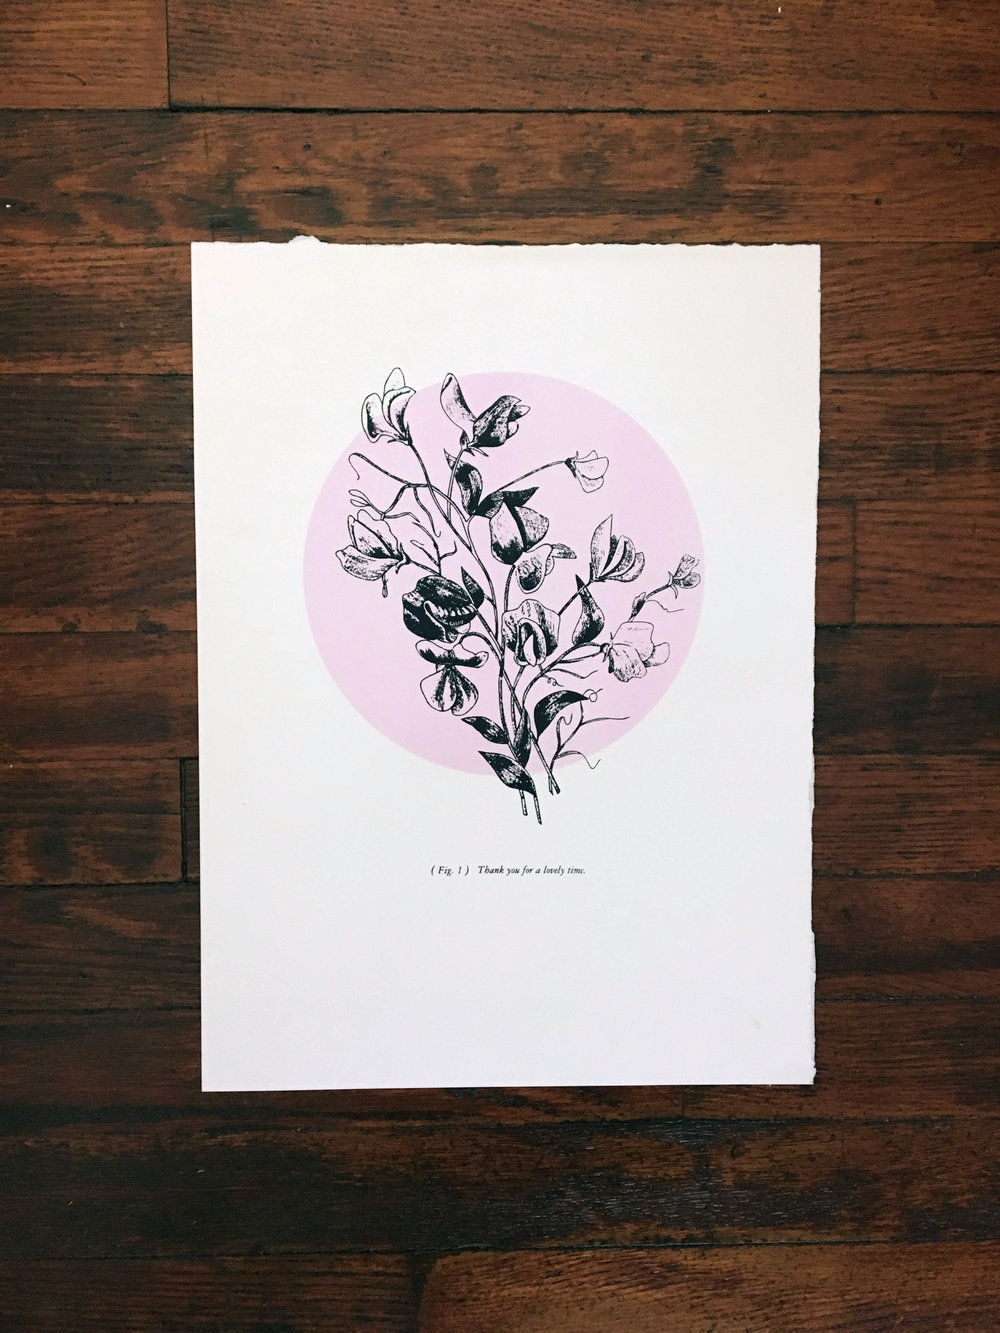 (Fig. 1) Thank you for a lovely time. A series exploring and depicting women's feminine side through color and delicate floral imagery, which is contrasted with a sarcastic/bold statement. The series is ironic in that sense and is meant to make the viewer question what femininity is to them and how they express it.